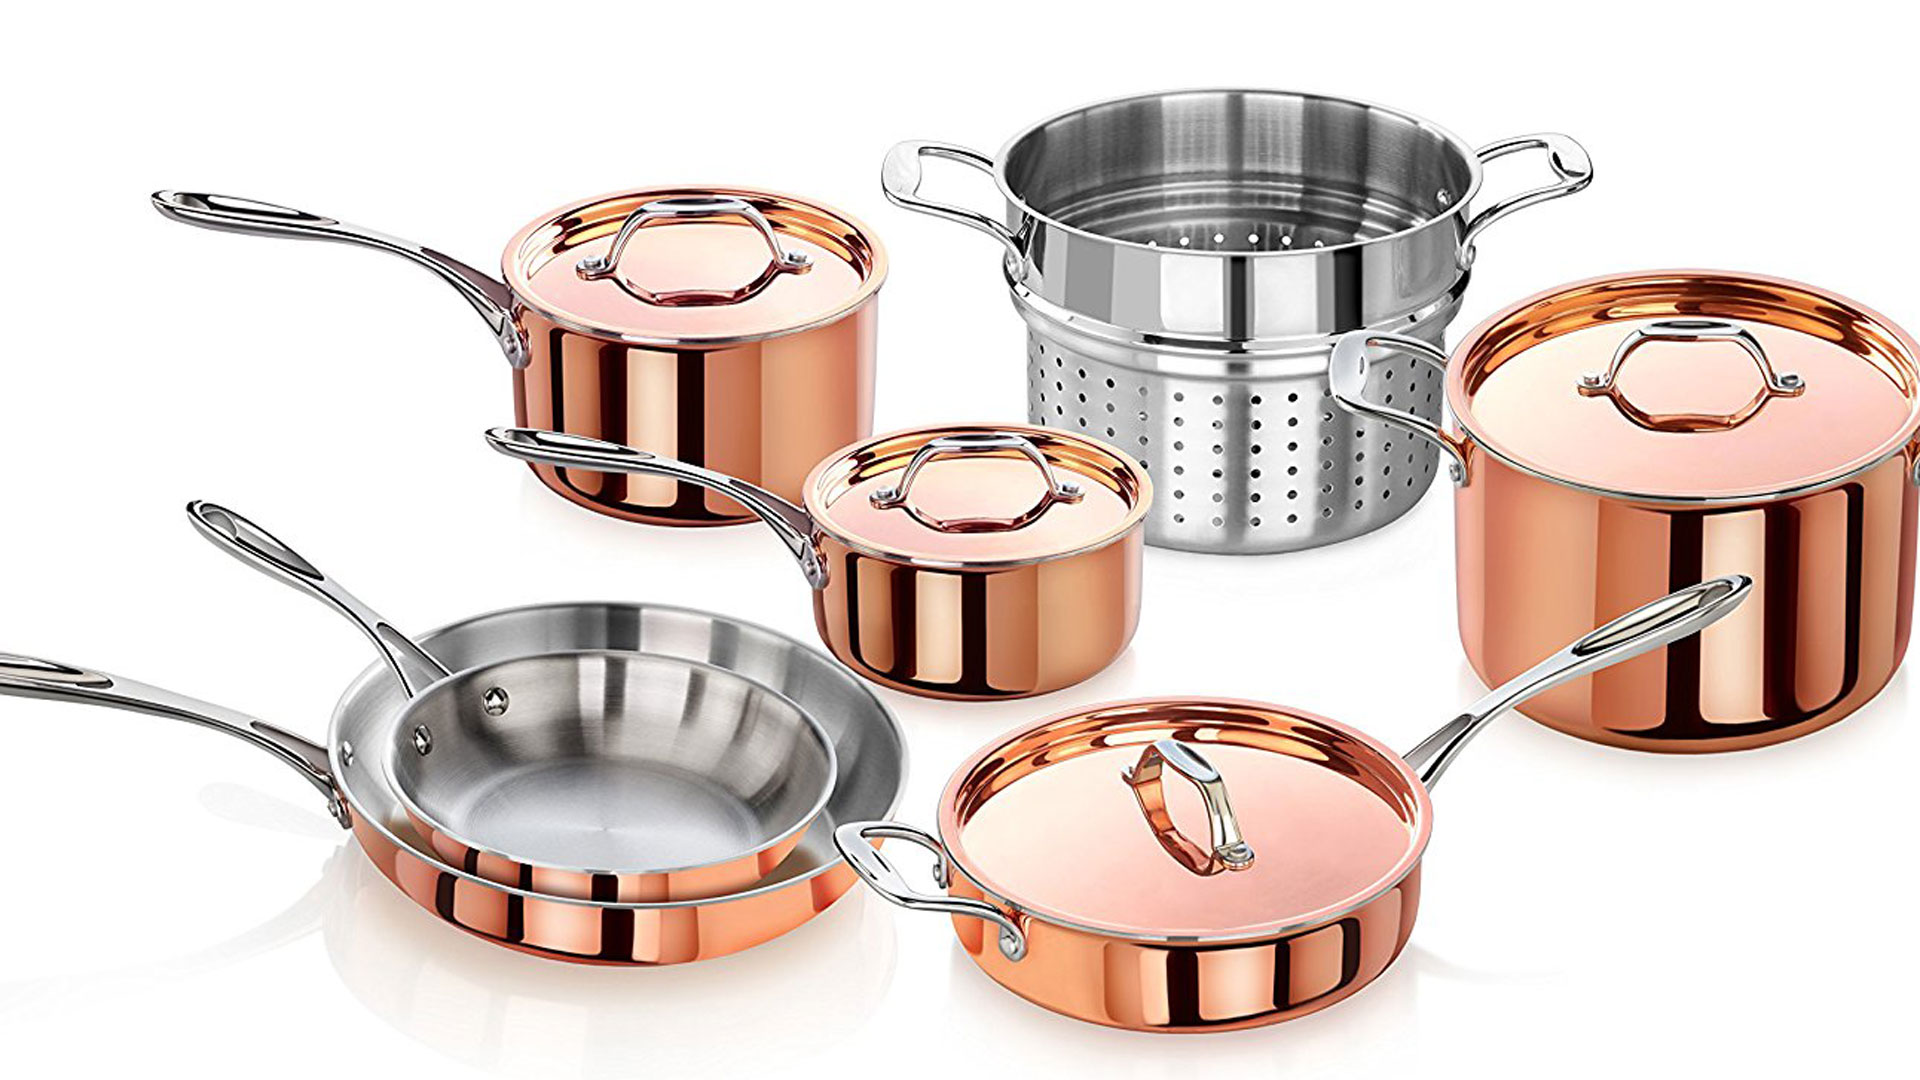 Top Brand Of Induction Cooker ~ Induction cookware sets